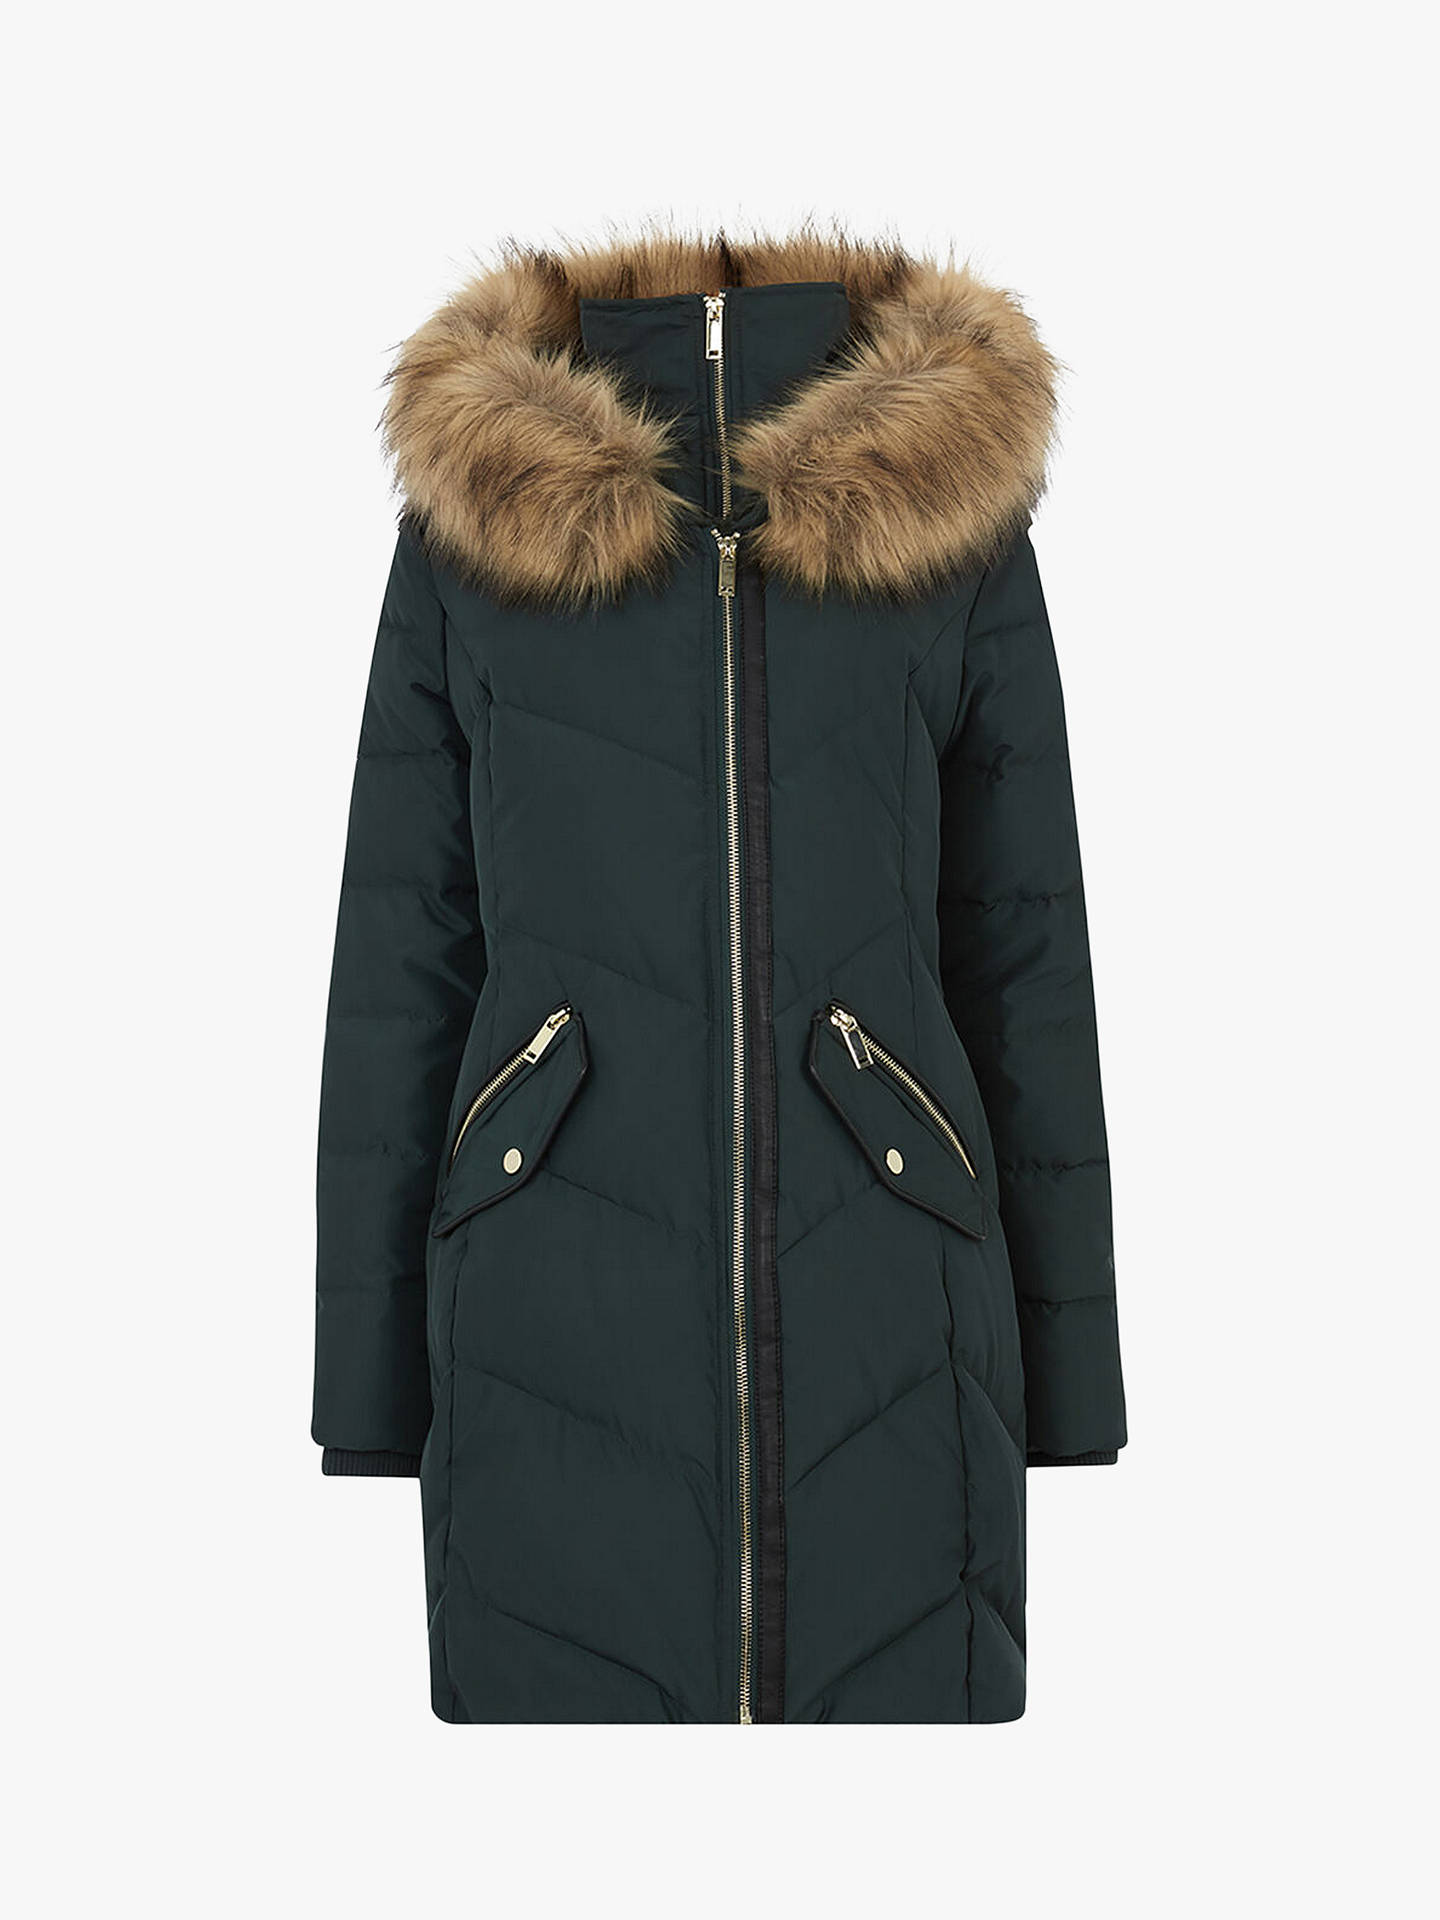 Oasis Albany Long Padded Coat, Deep Green by Oasis